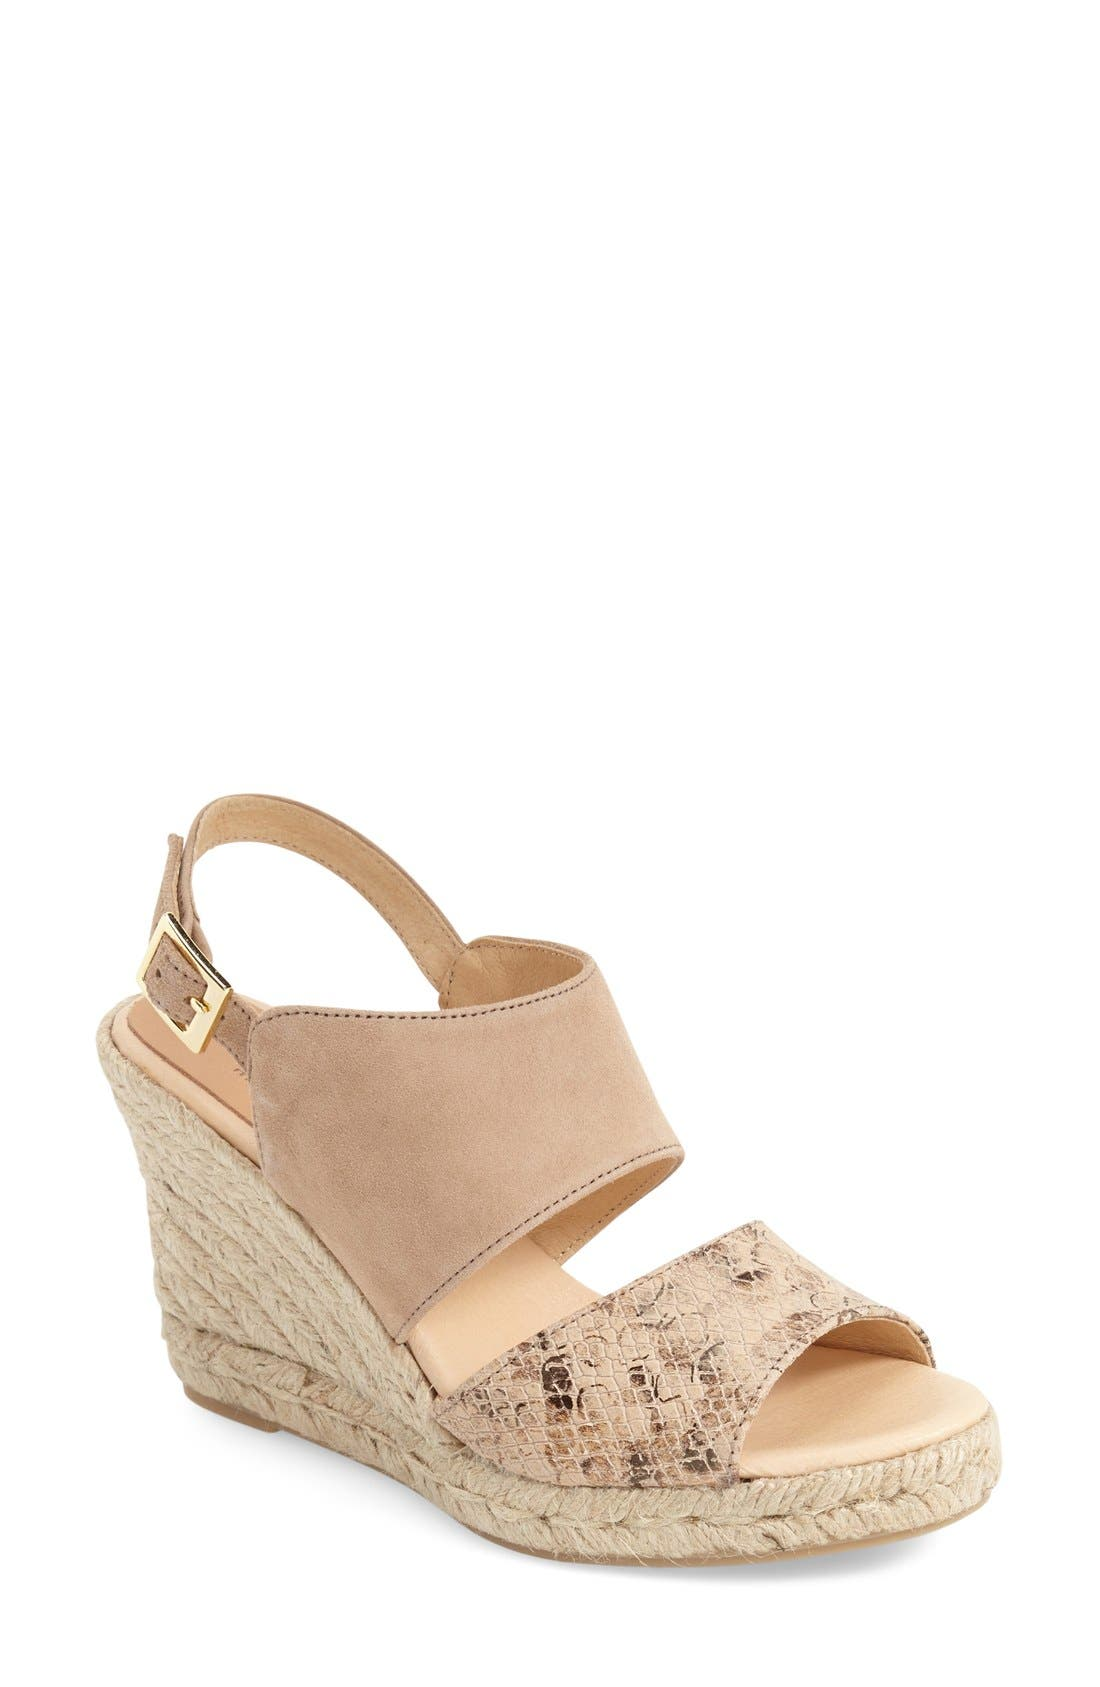 Main Image - patricia green 'Elise' Wedge Sandal (Women)